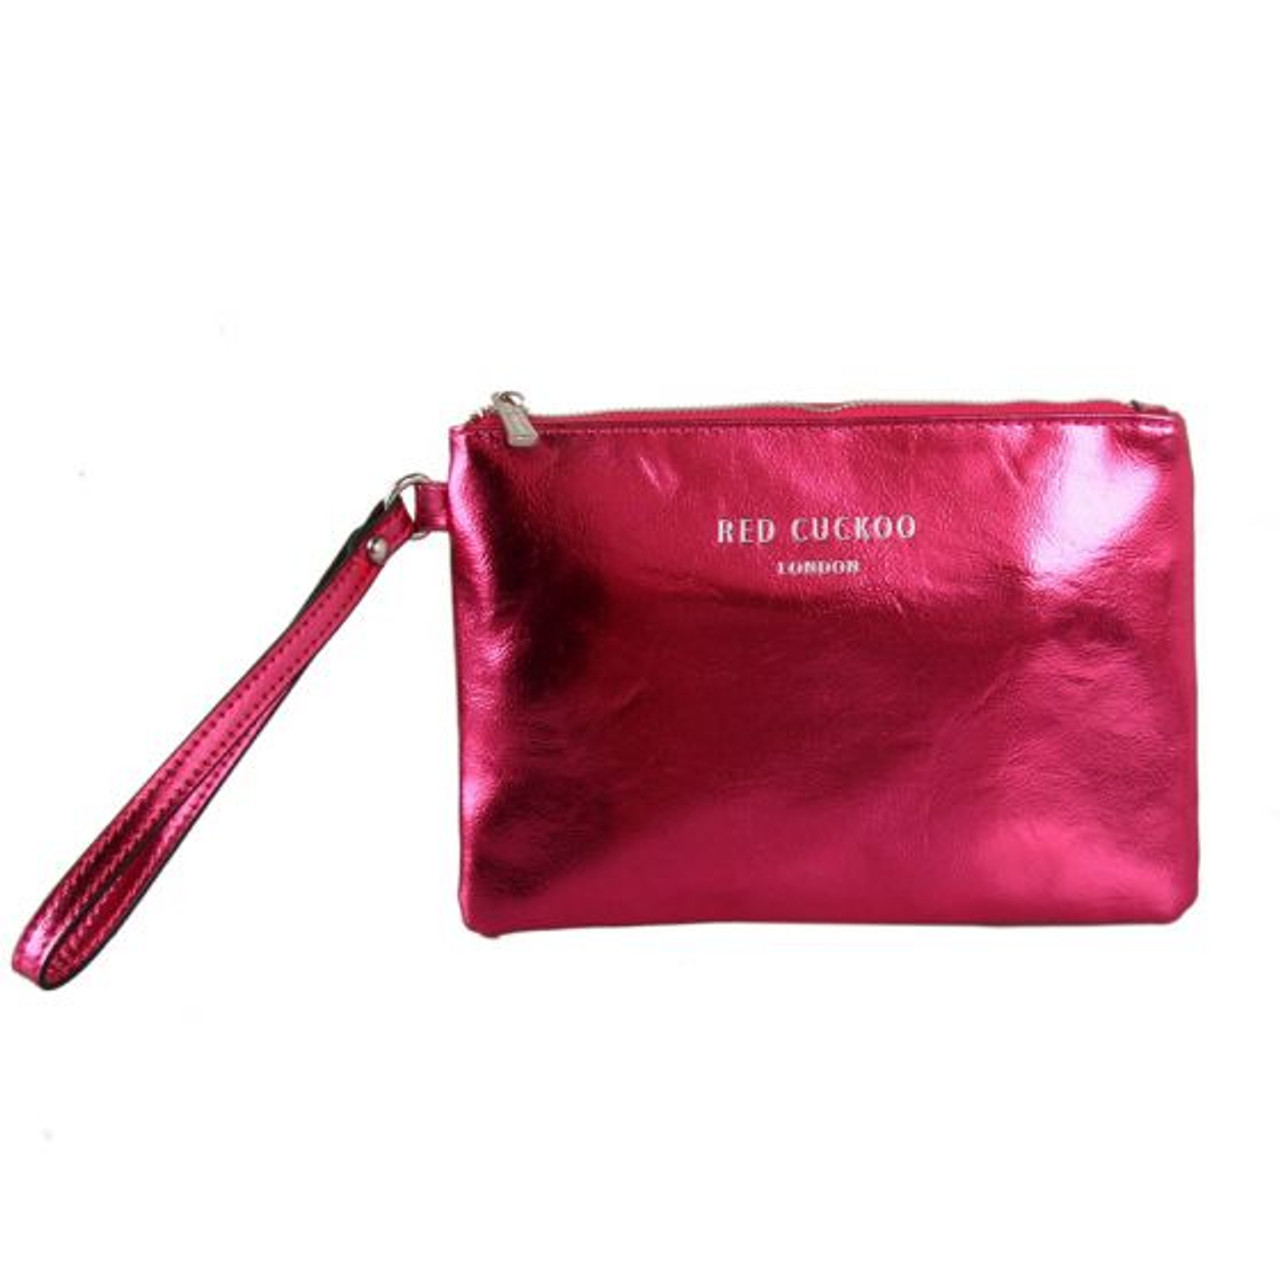 c1b3cd2a023 Red Cuckoo Metallic Fuchsia Clutch - Itsy Bitsy Boutique